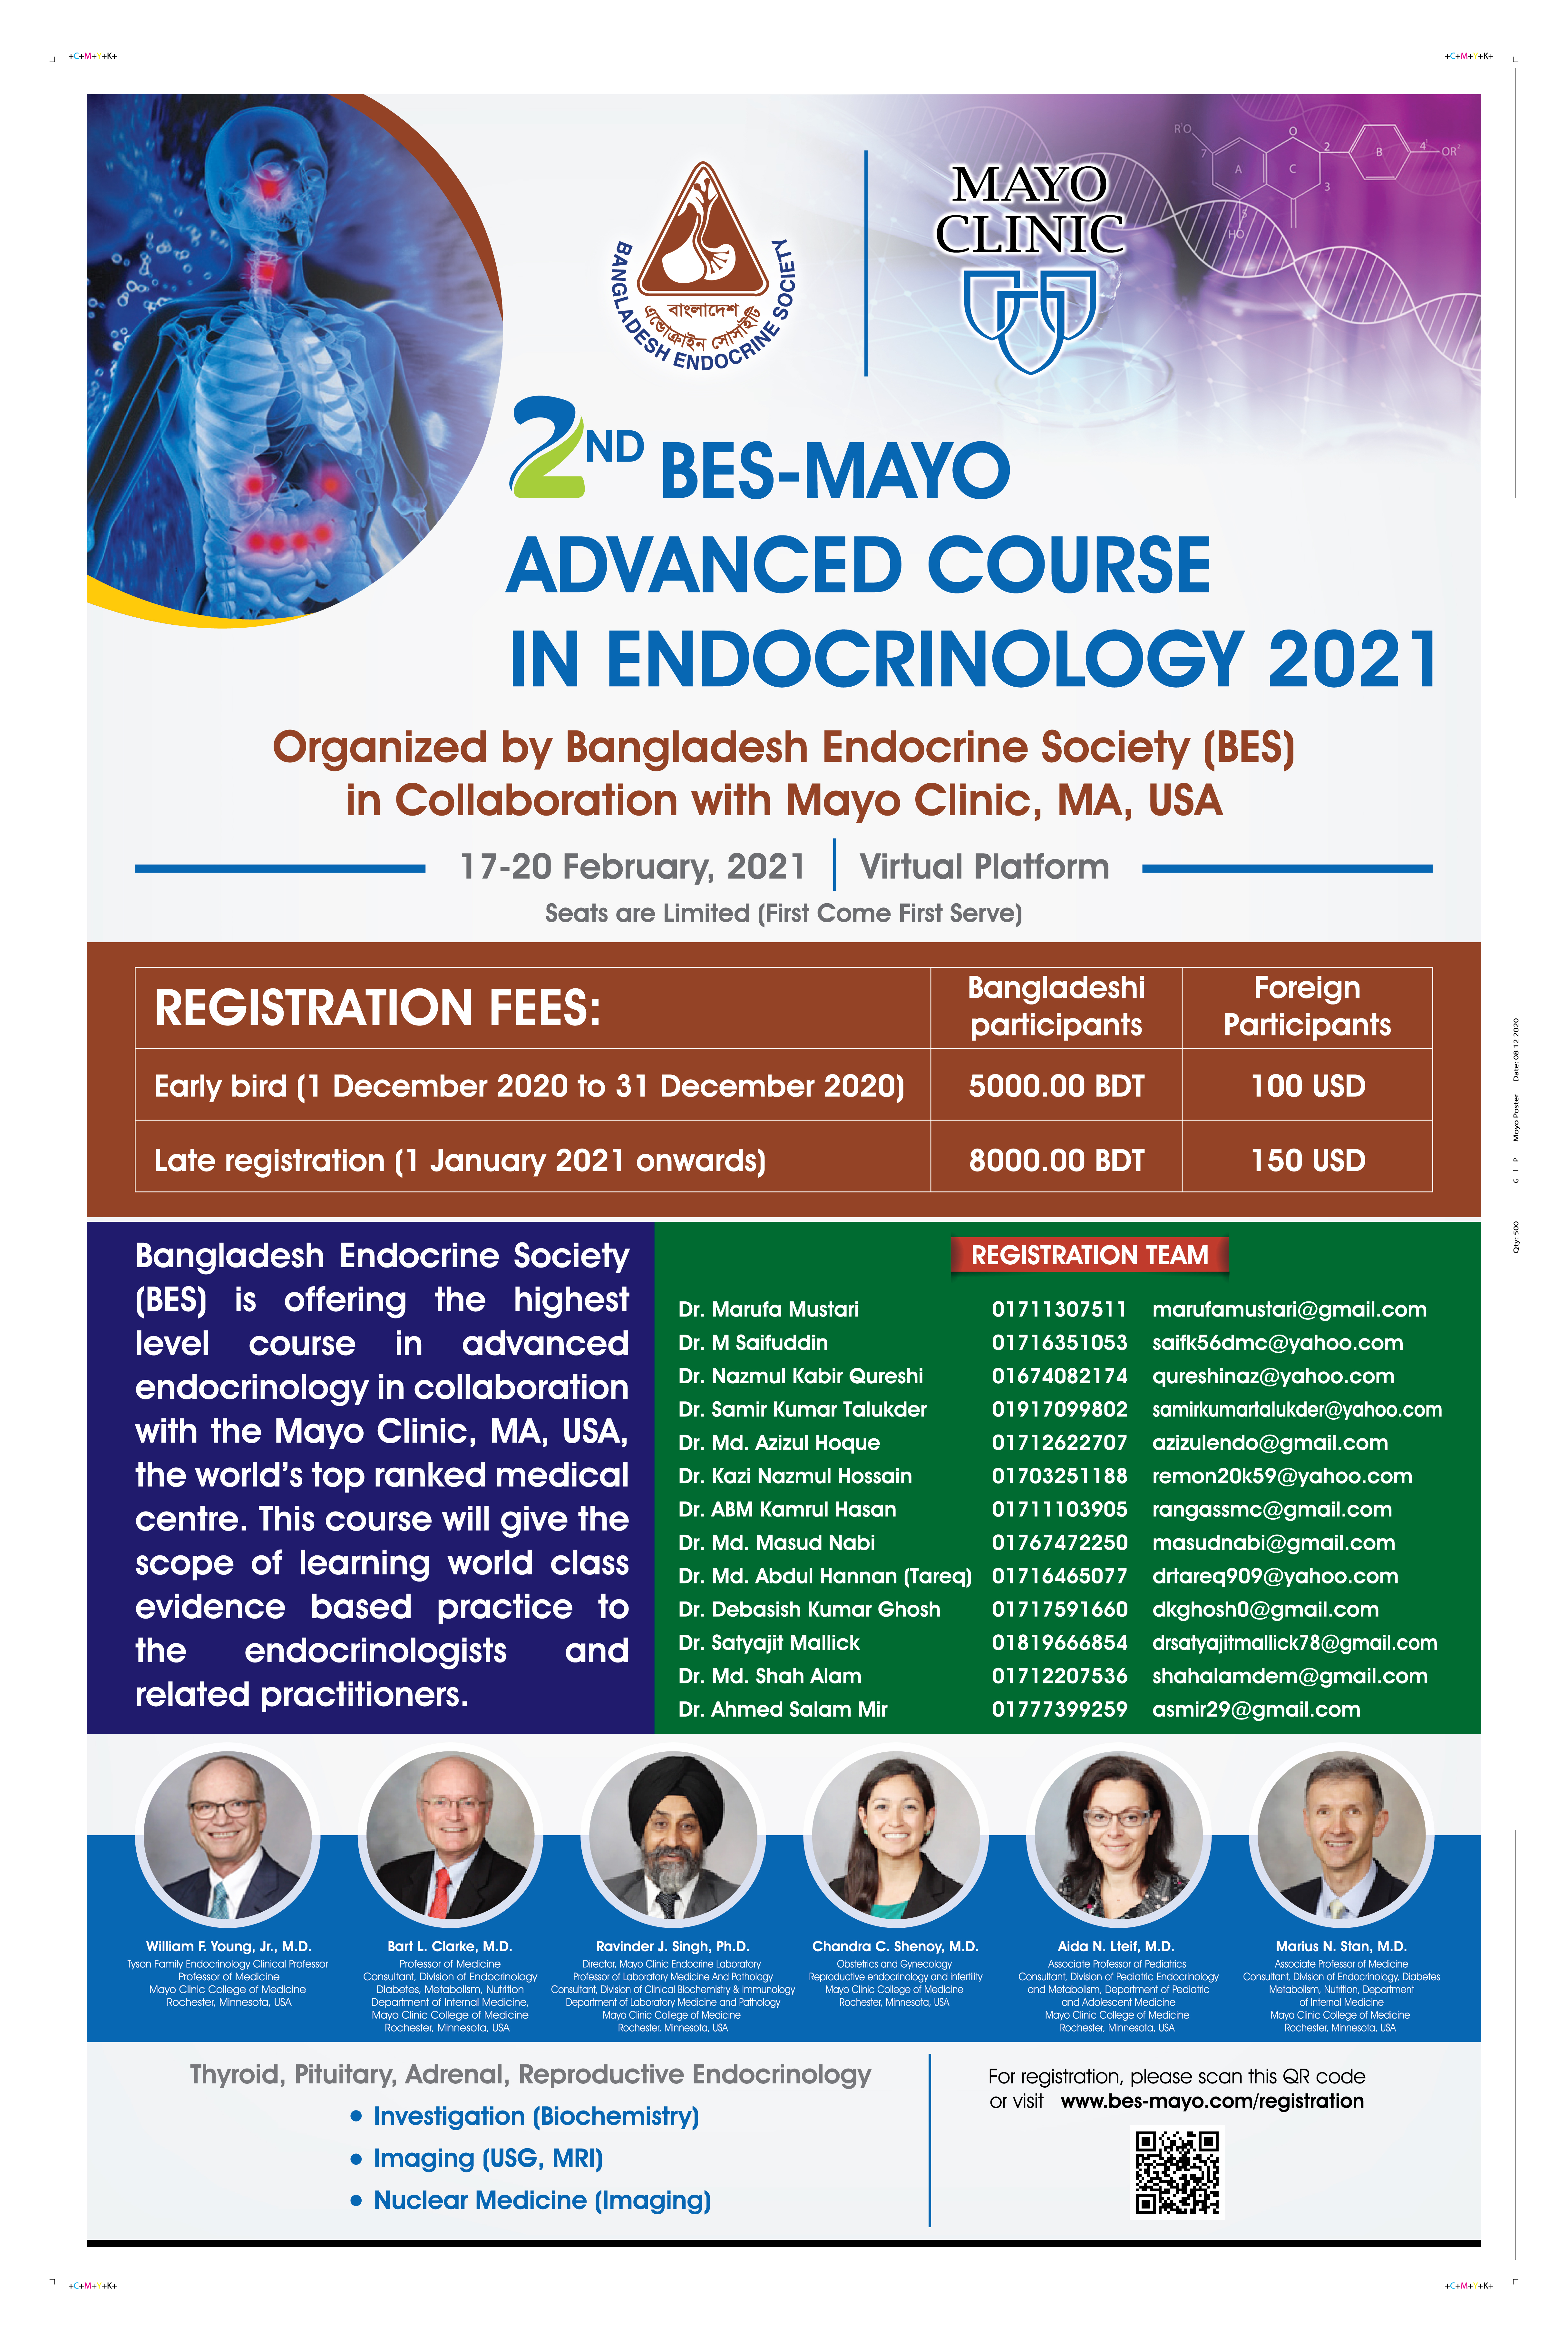 Registration Of 2nd BES-MAYO Advanced Course In Endocrinology 2021